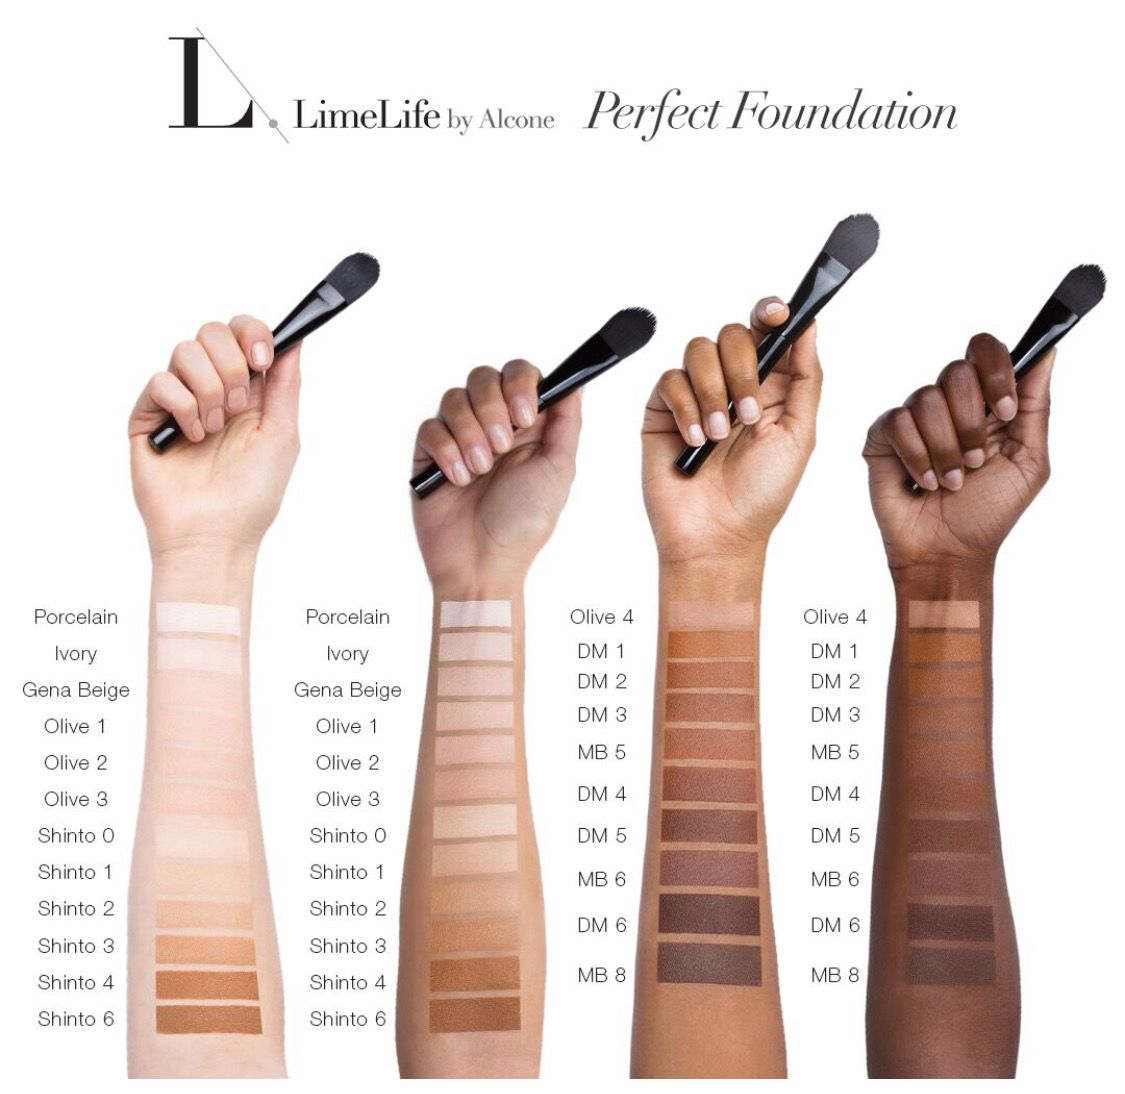 d3df0b44801 Limelife by Alcone perfect foundation swatches | Limelife by Alcone ...